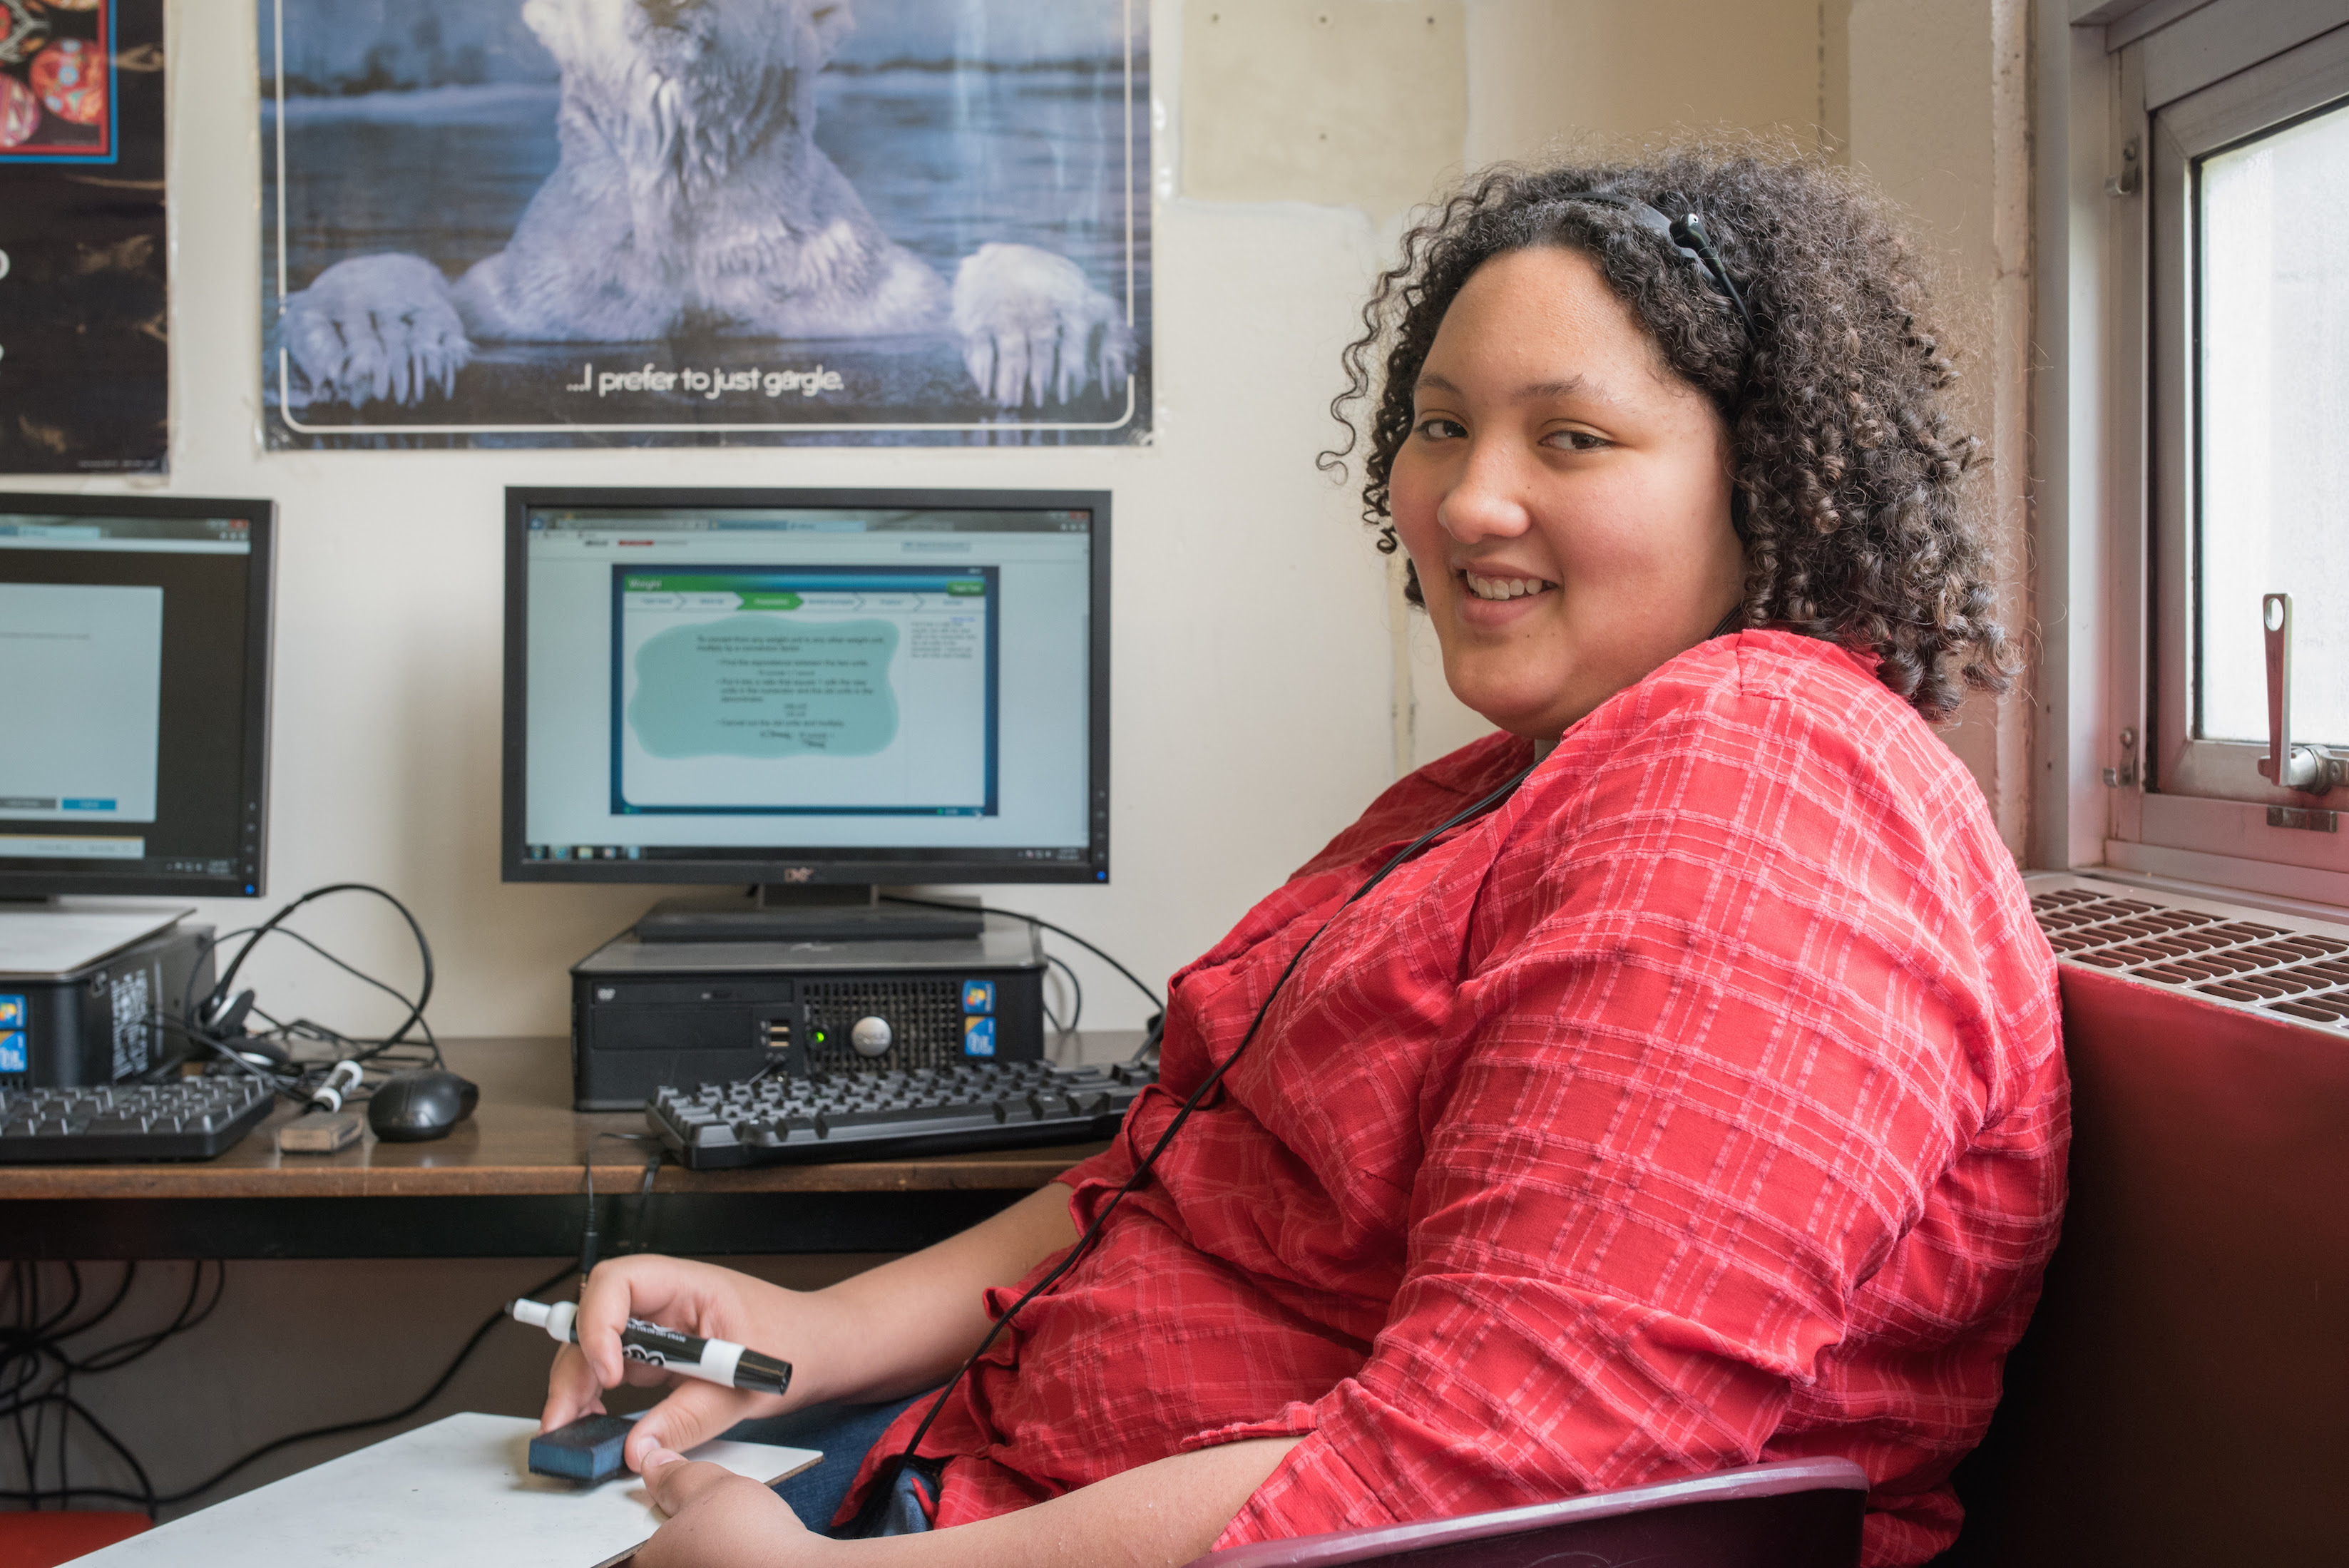 A student with curly short, dark hair in a red shirt is seated with a whiteboard in front of desktop computer displaying EdReady